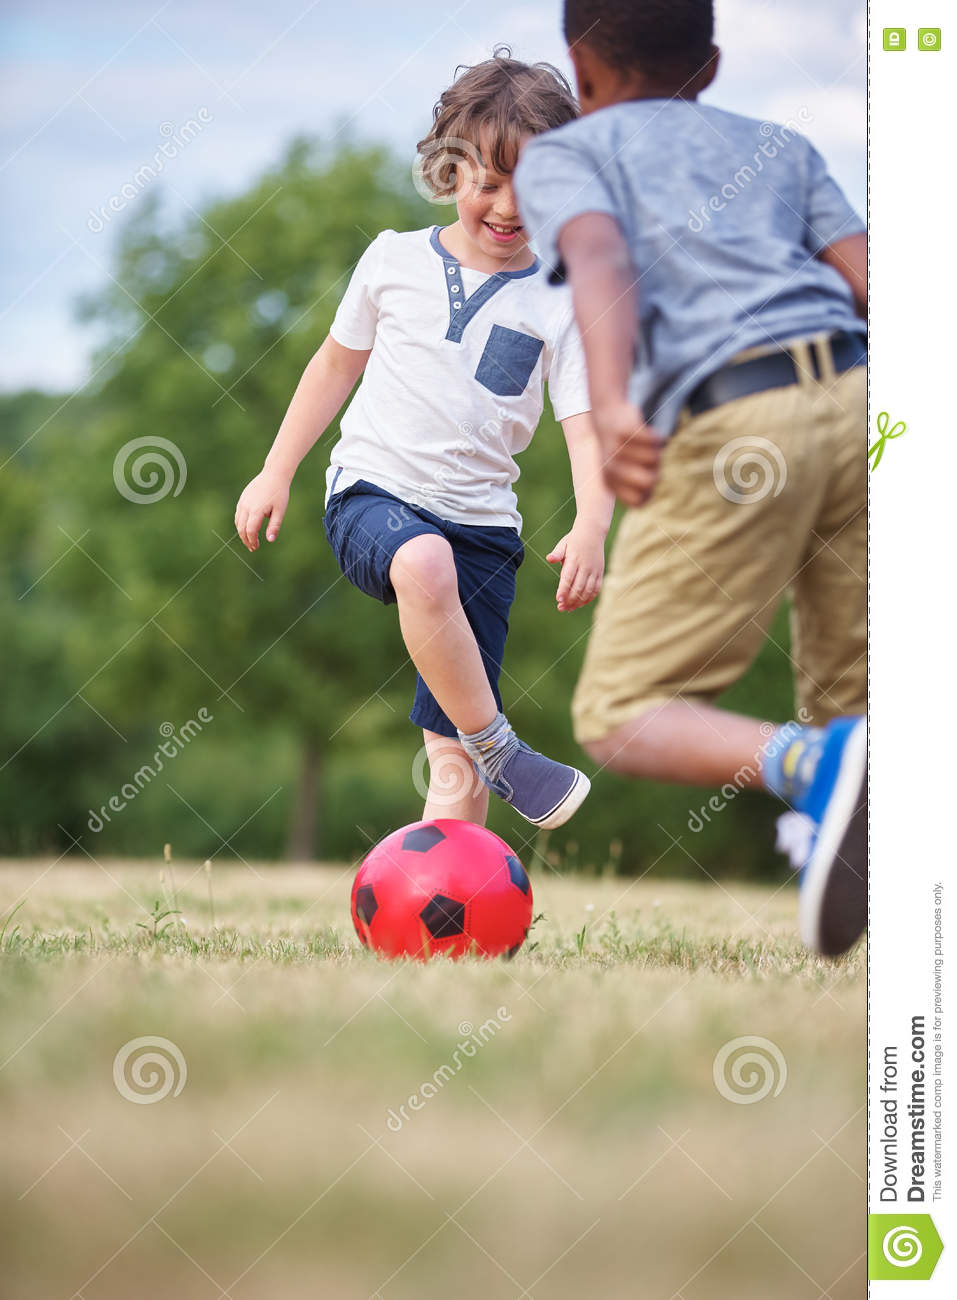 Two happy kids playing soccer